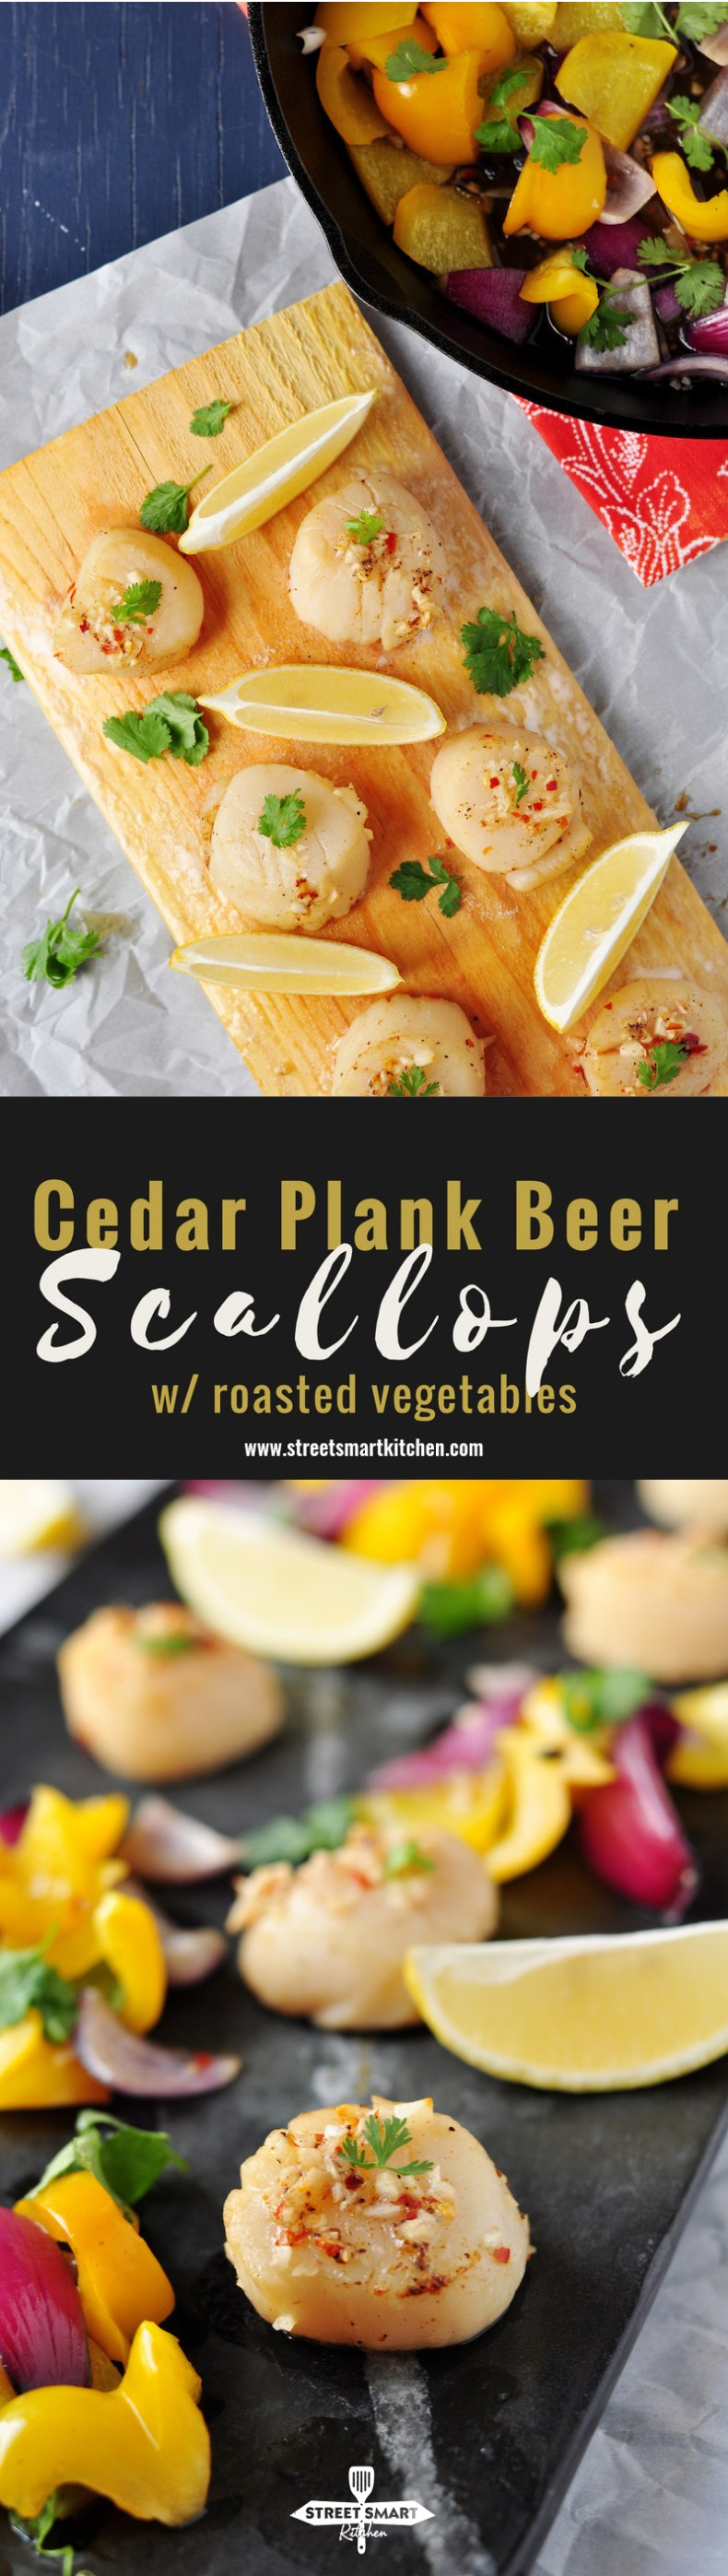 Scallops marinated in a seasoned beer mixture, grilled on a cedar plank that's soaked in beer along with onions and bell peppers in the same marinade, this cedar plank beer scallops recipe makes a wonderful weekday dinner. Or, open a bottle of good wine to pair with it, and suddenly, you've got a fabulous date night dinner. Date night in is the best kind of date, in my opinion. :)